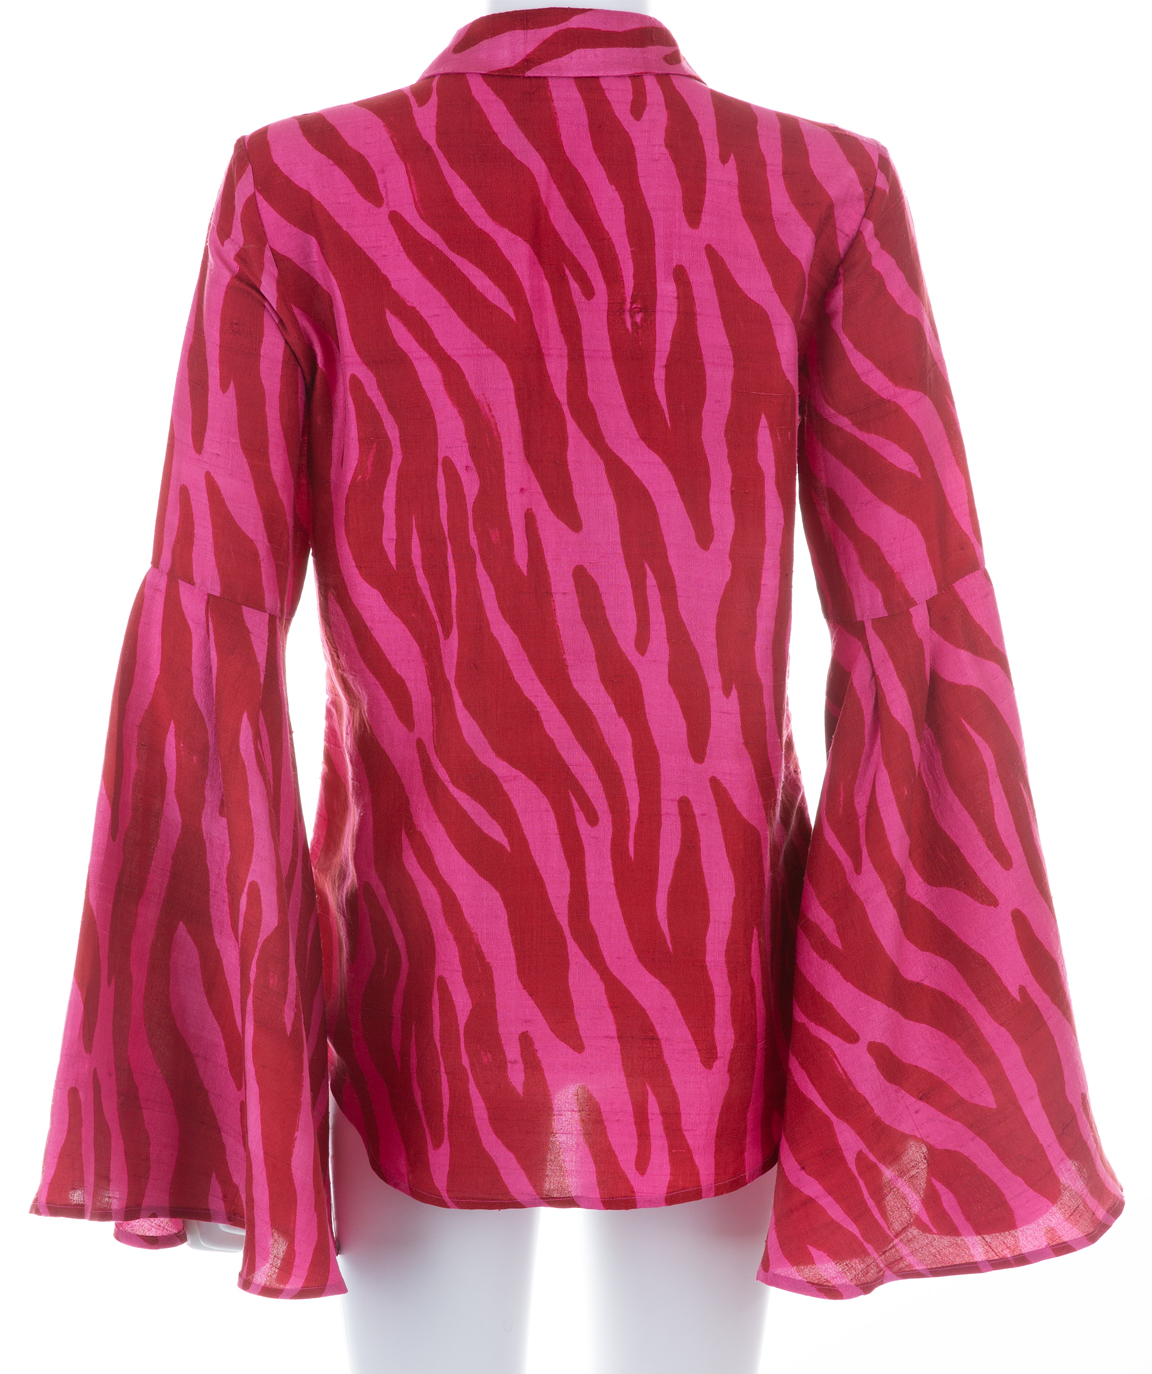 Pink & Red Show Blouse